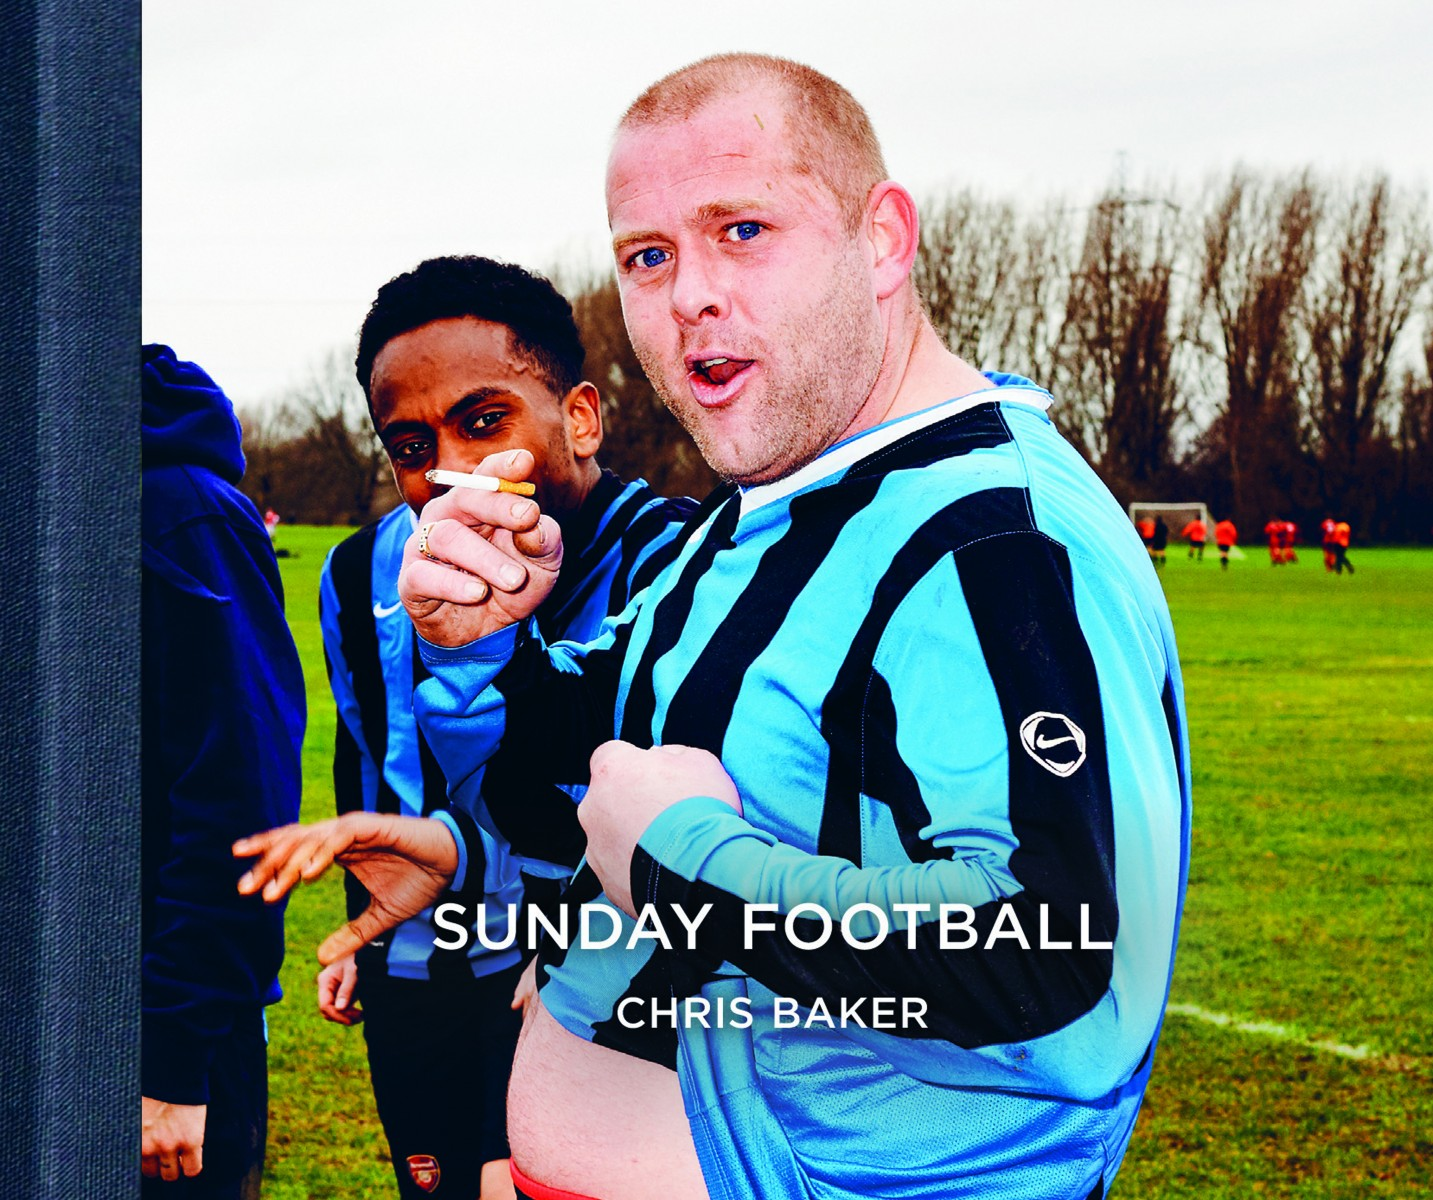 'Sunday Football' photo book cover